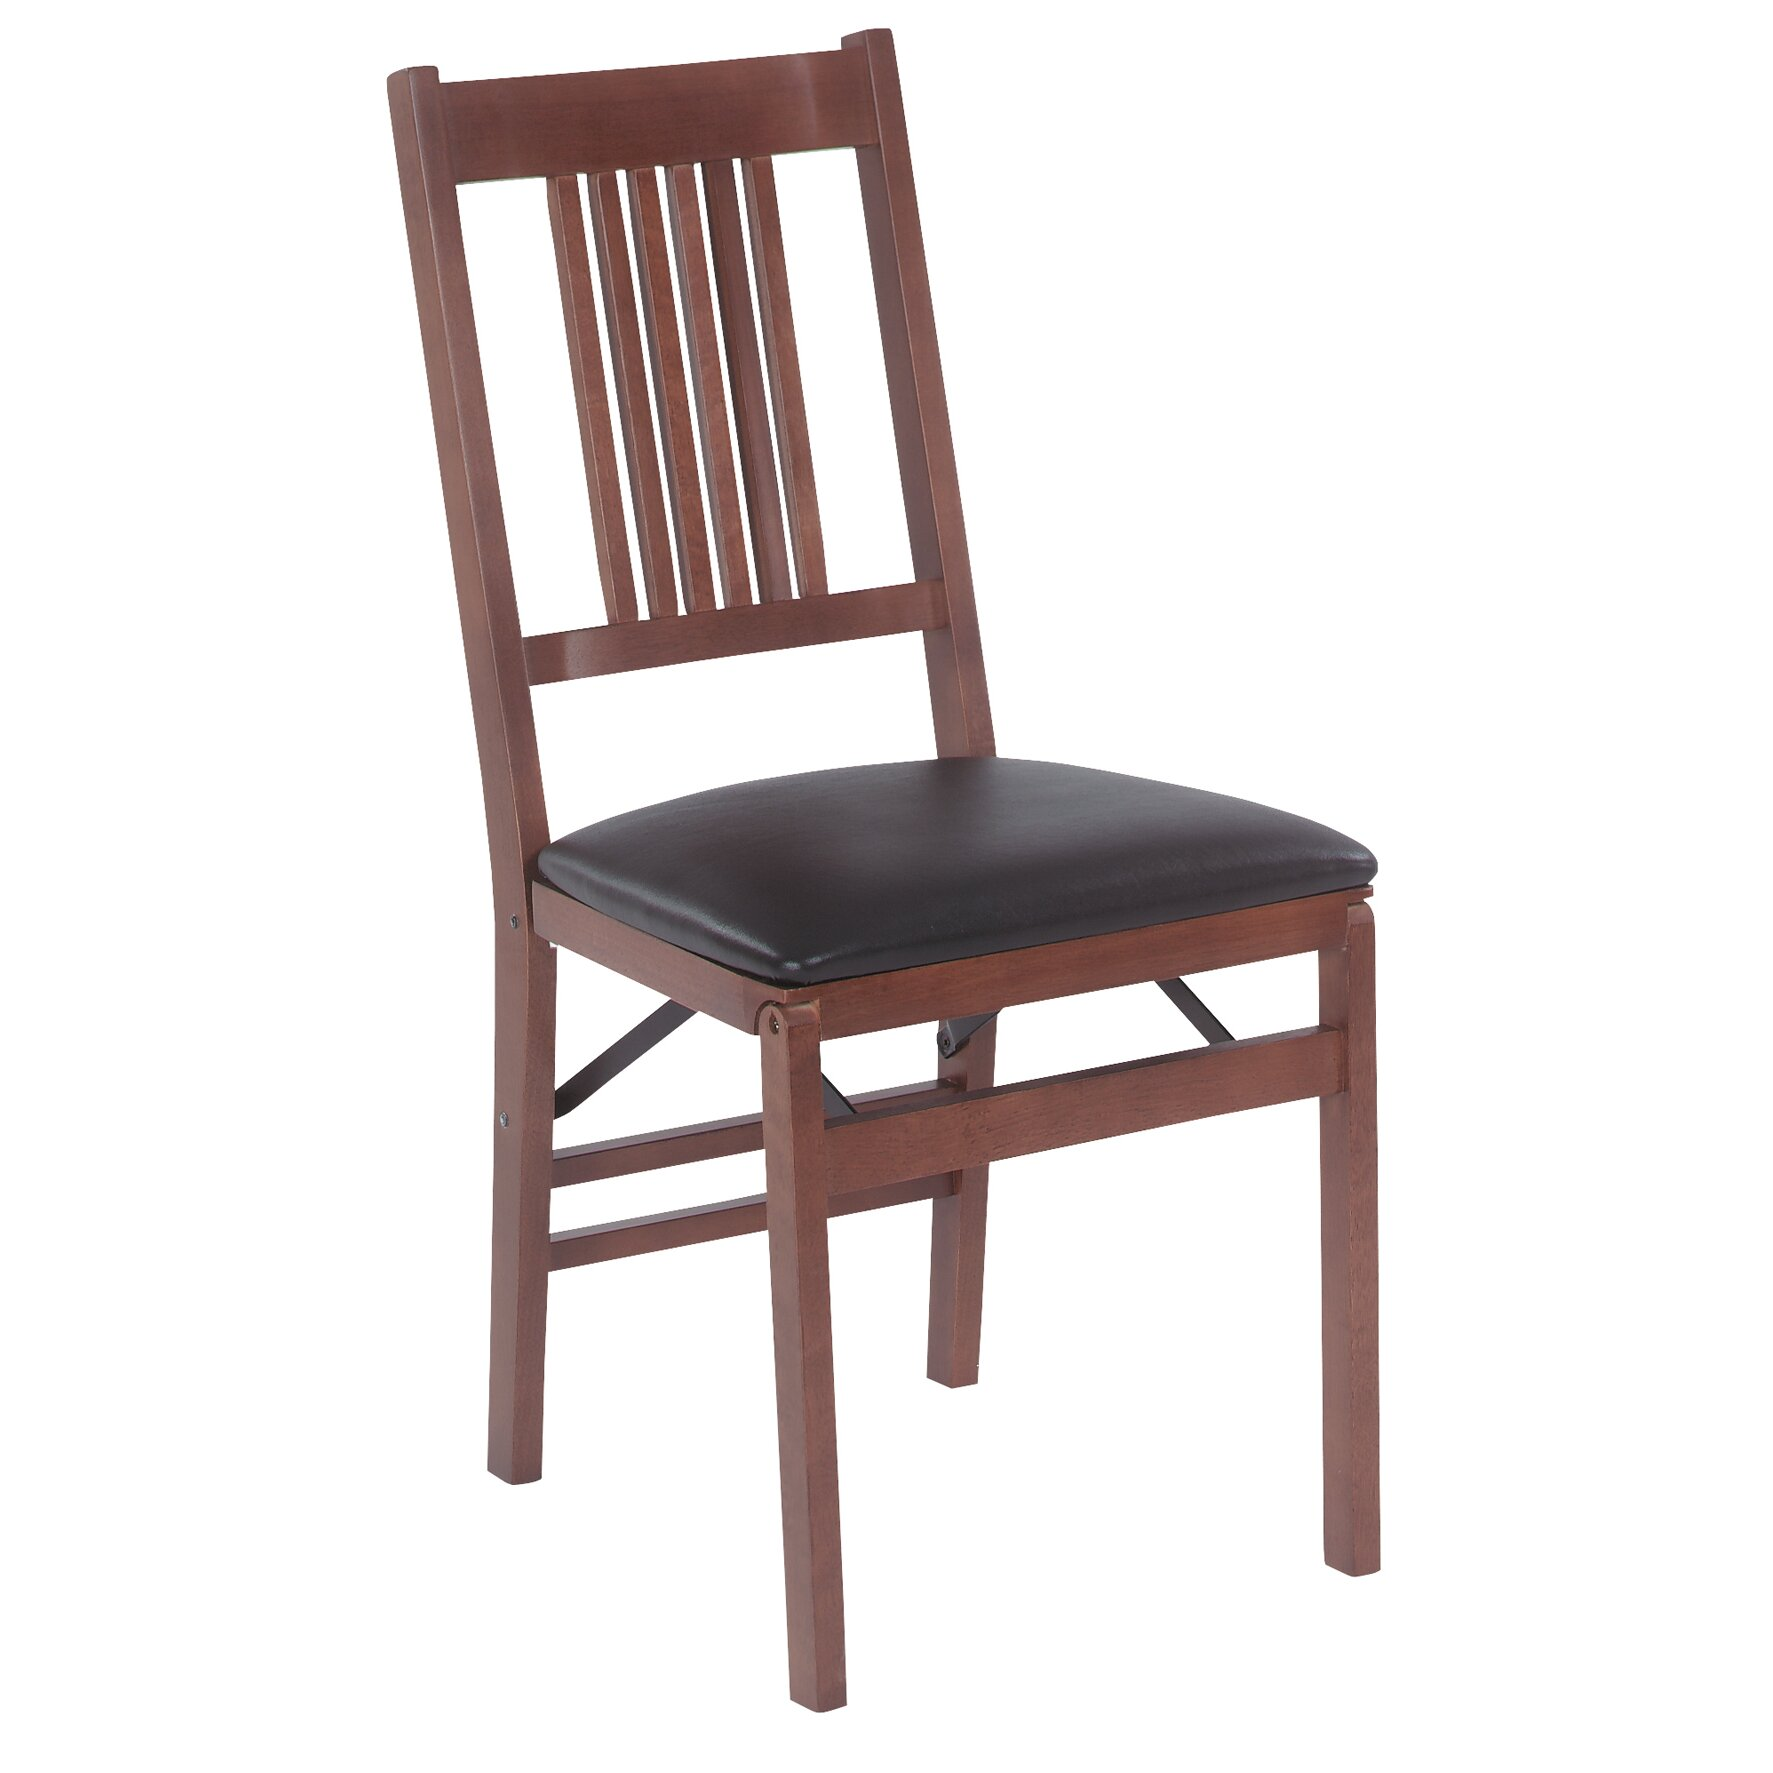 Stakmore True Mission Wood Folding Chair With Vinyl Seat